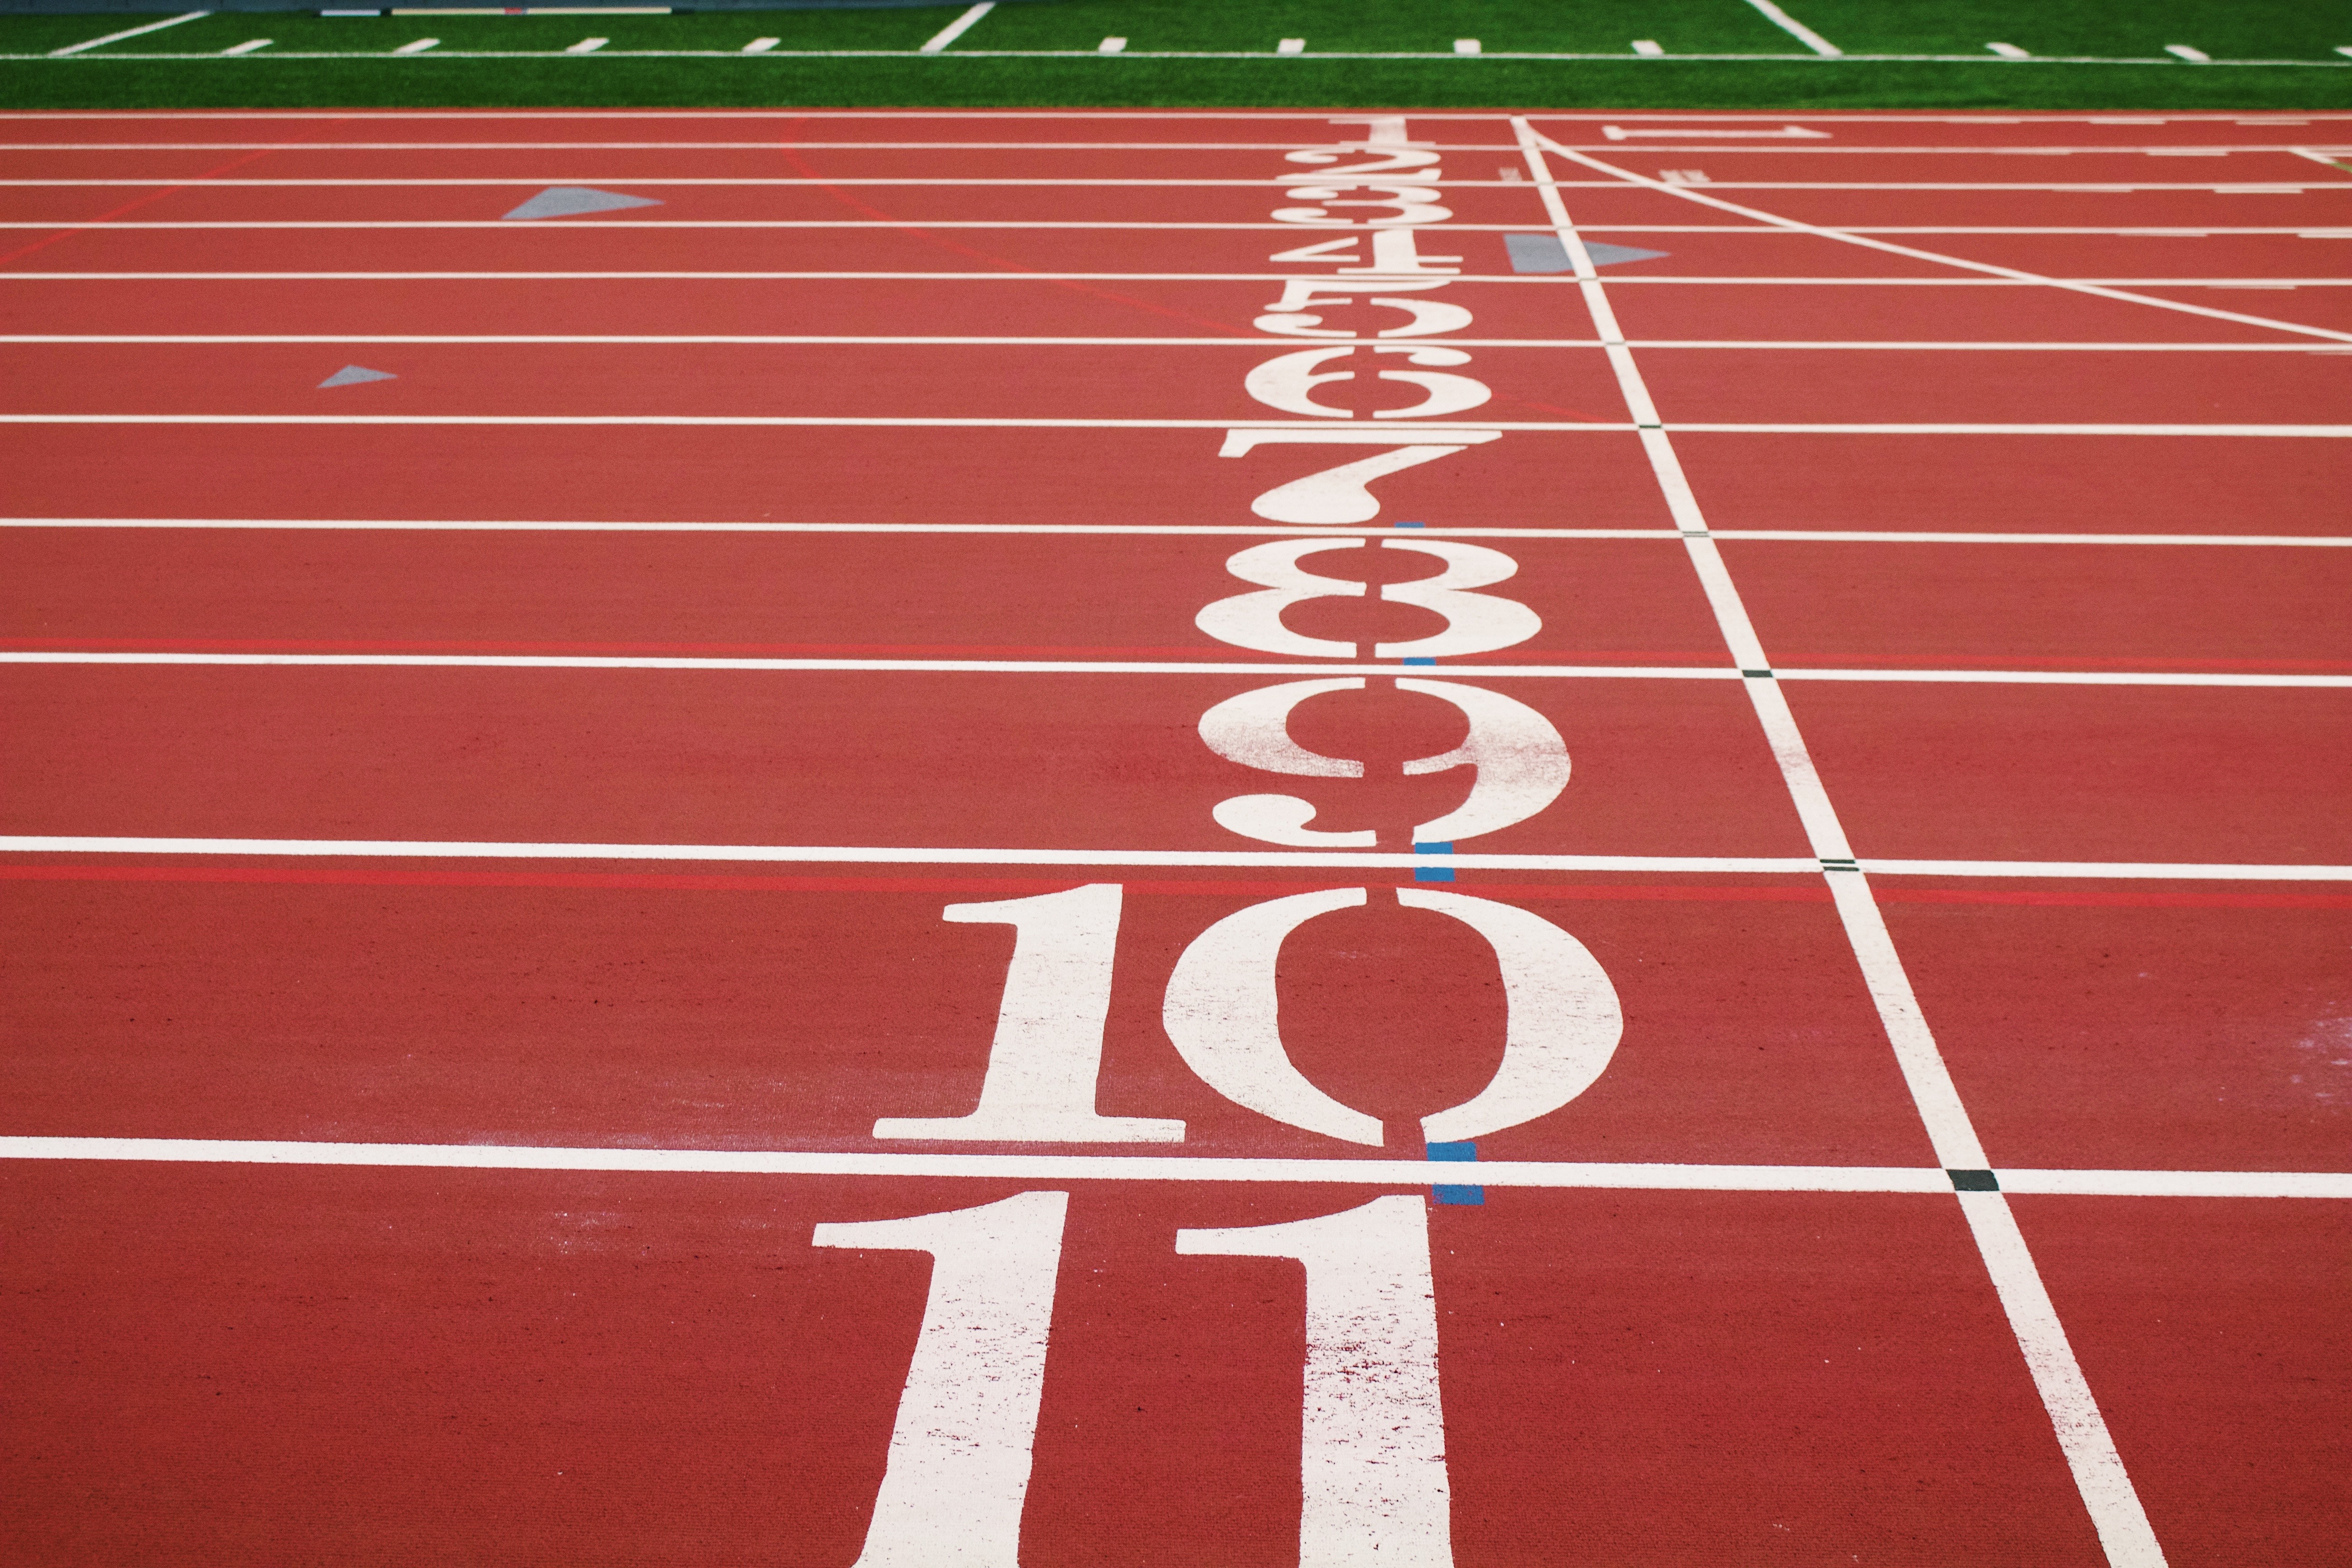 A running track with numbers on it